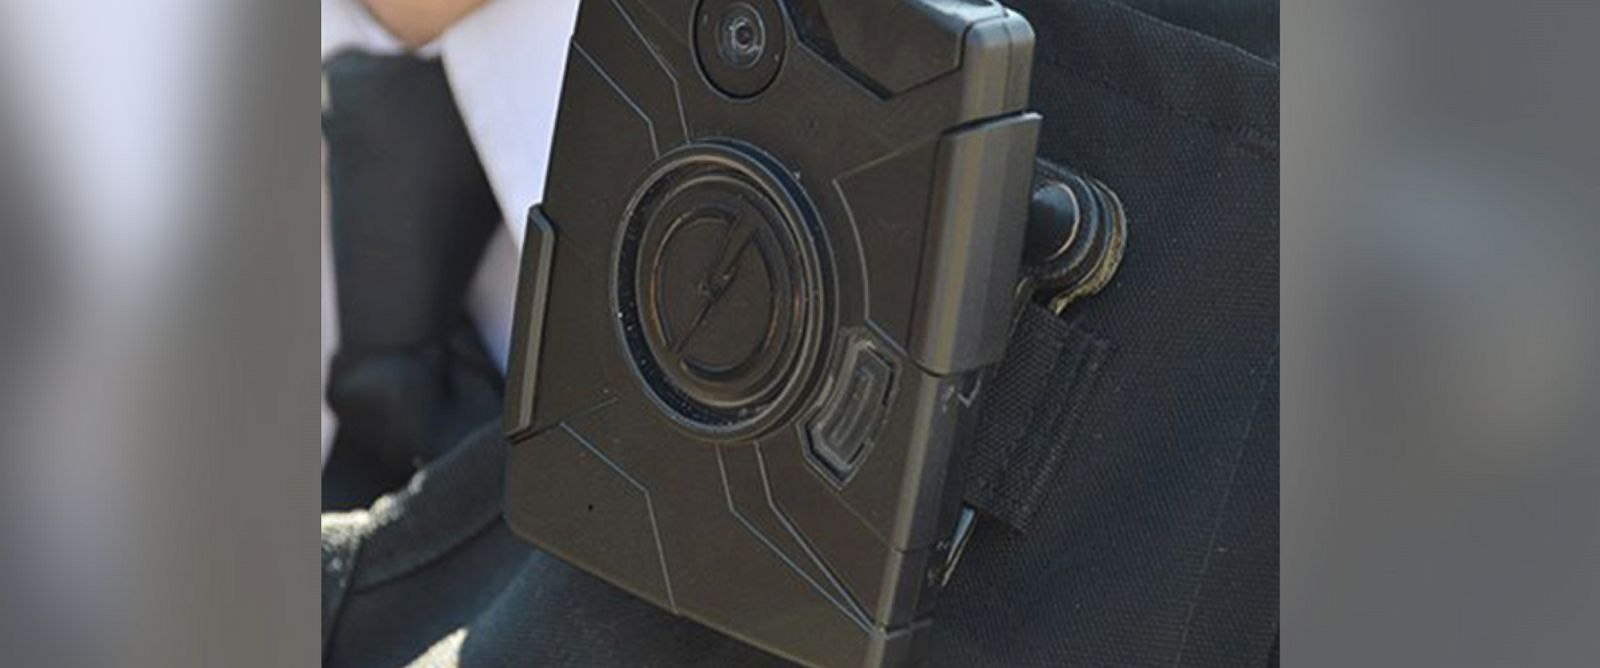 PHOTO: Londons Metropolitan Police Service posted this image of a body-worn camera to their Facebook on May 8, 2014.